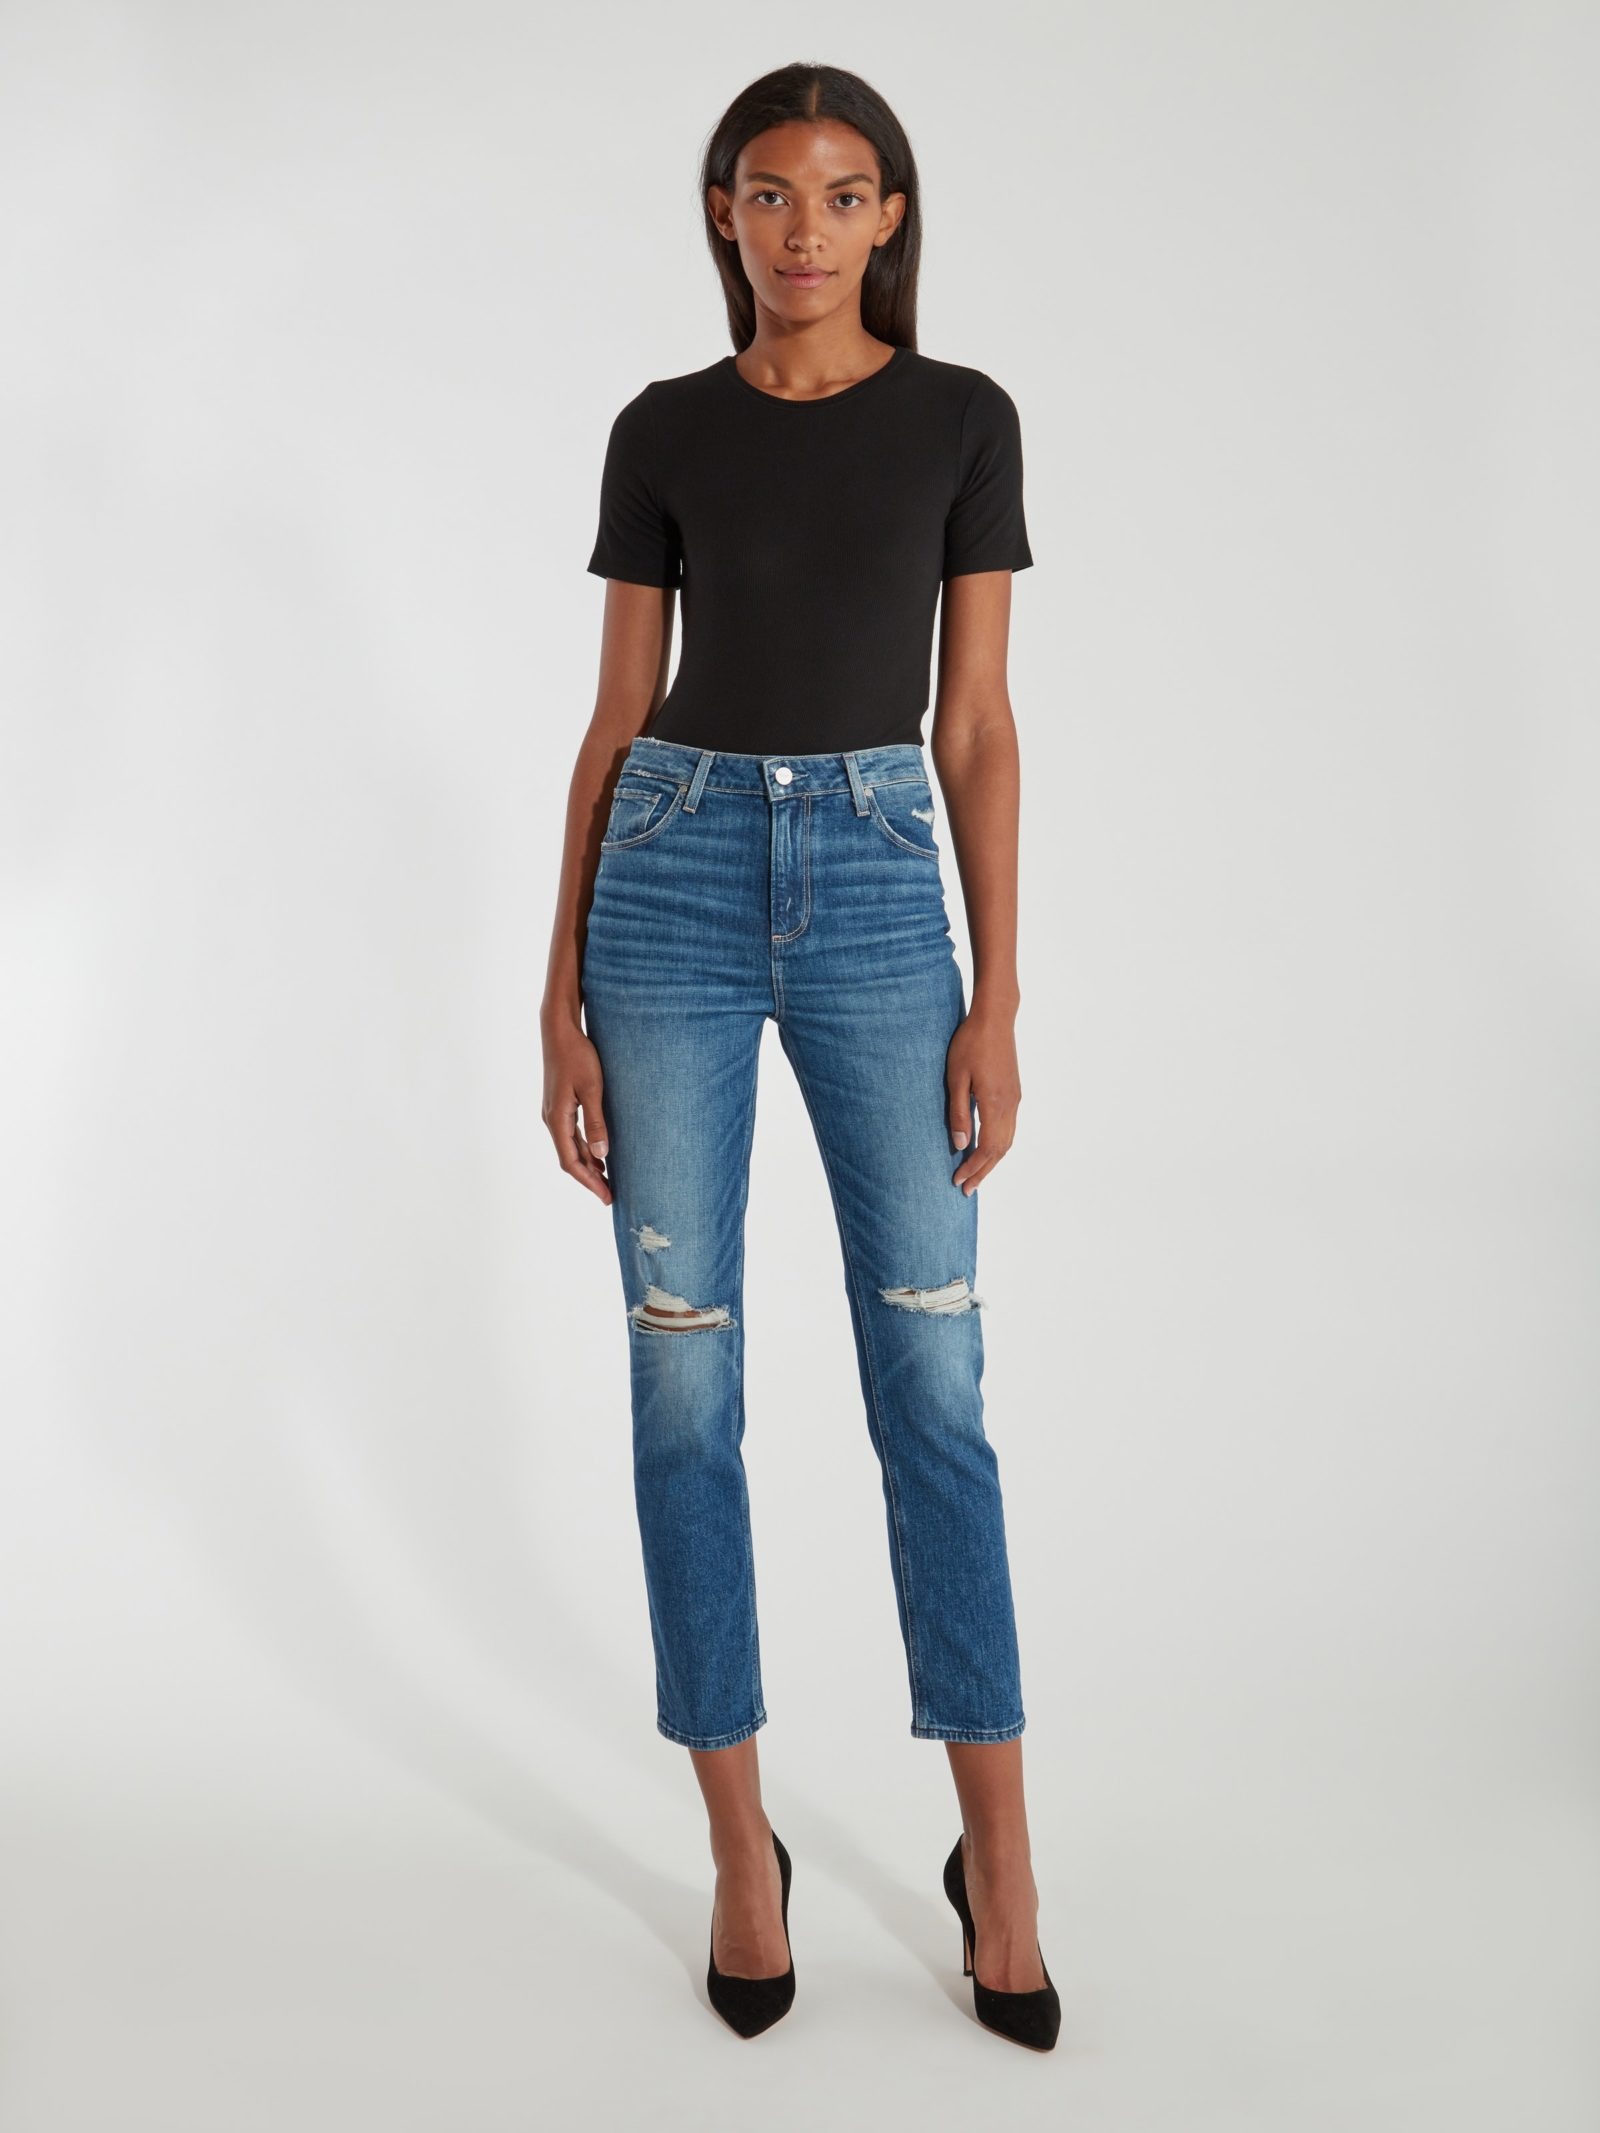 Verishop's Up To 80% Off Sale jeans